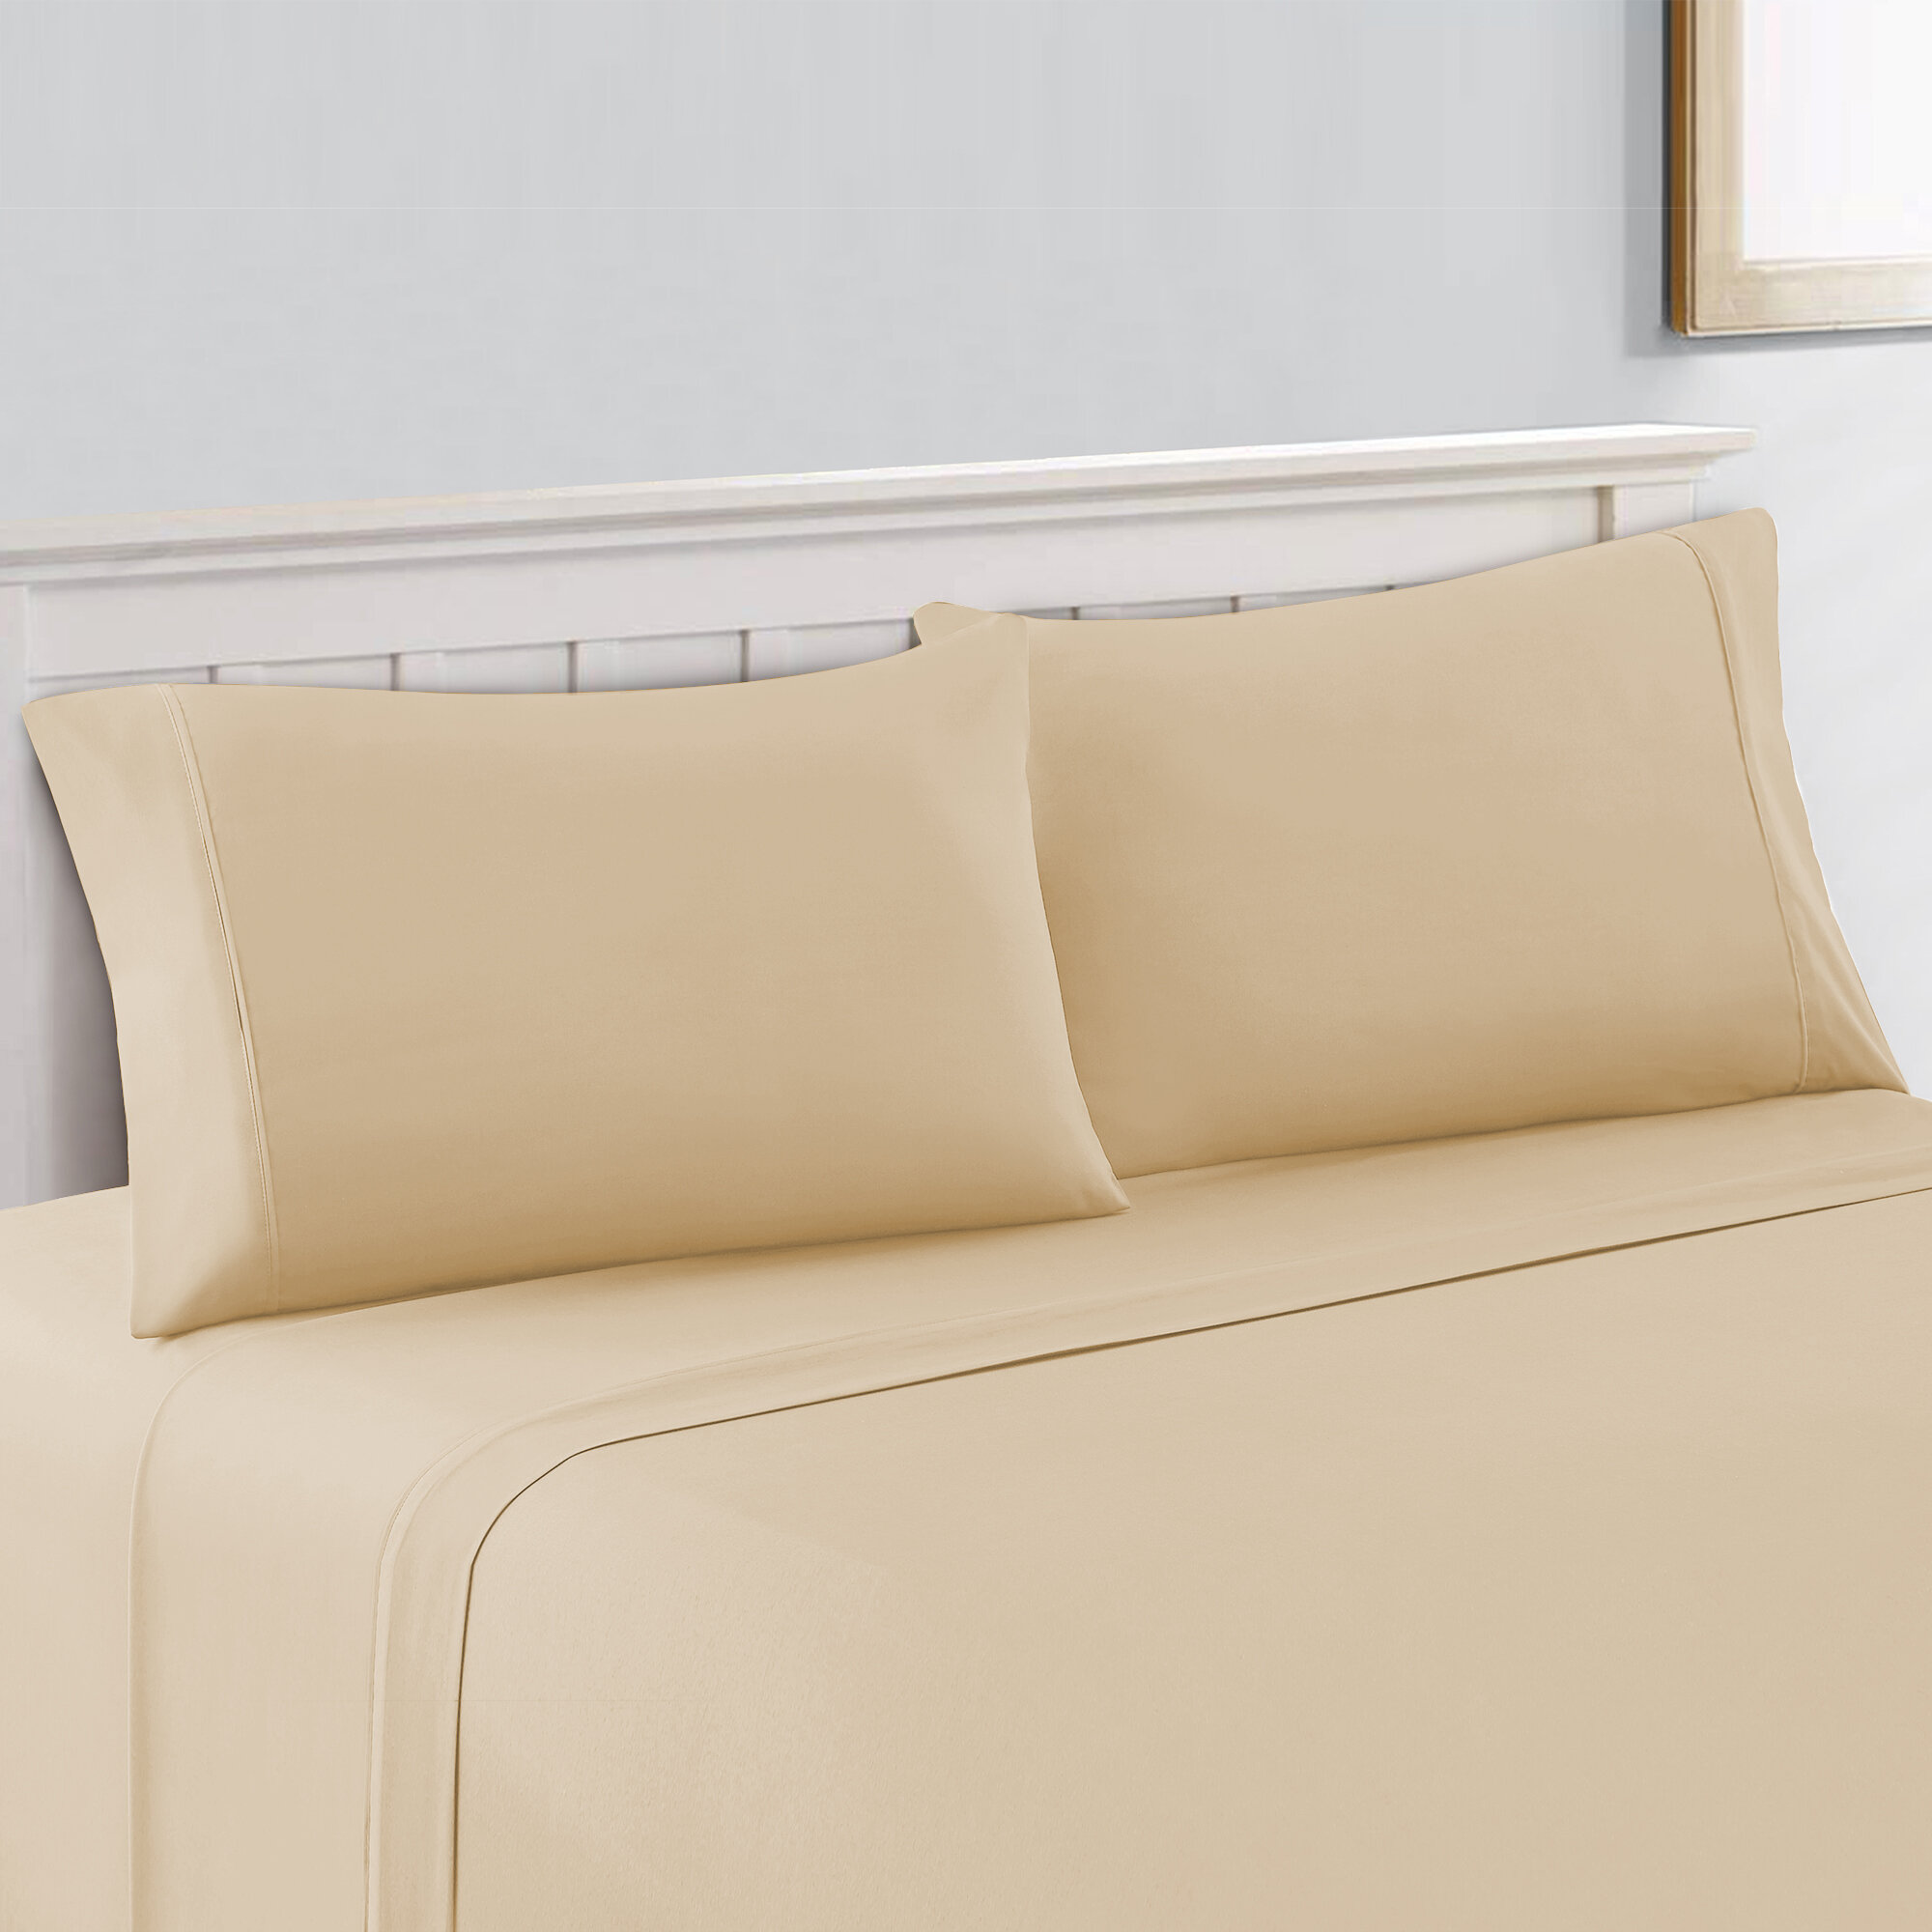 at need for bed blog pin best sleeper s private home buy about making hot to good grown perfect a sheets from your everything how you up trulia oasis bedding bedroom like here takes ok know life sleepers the